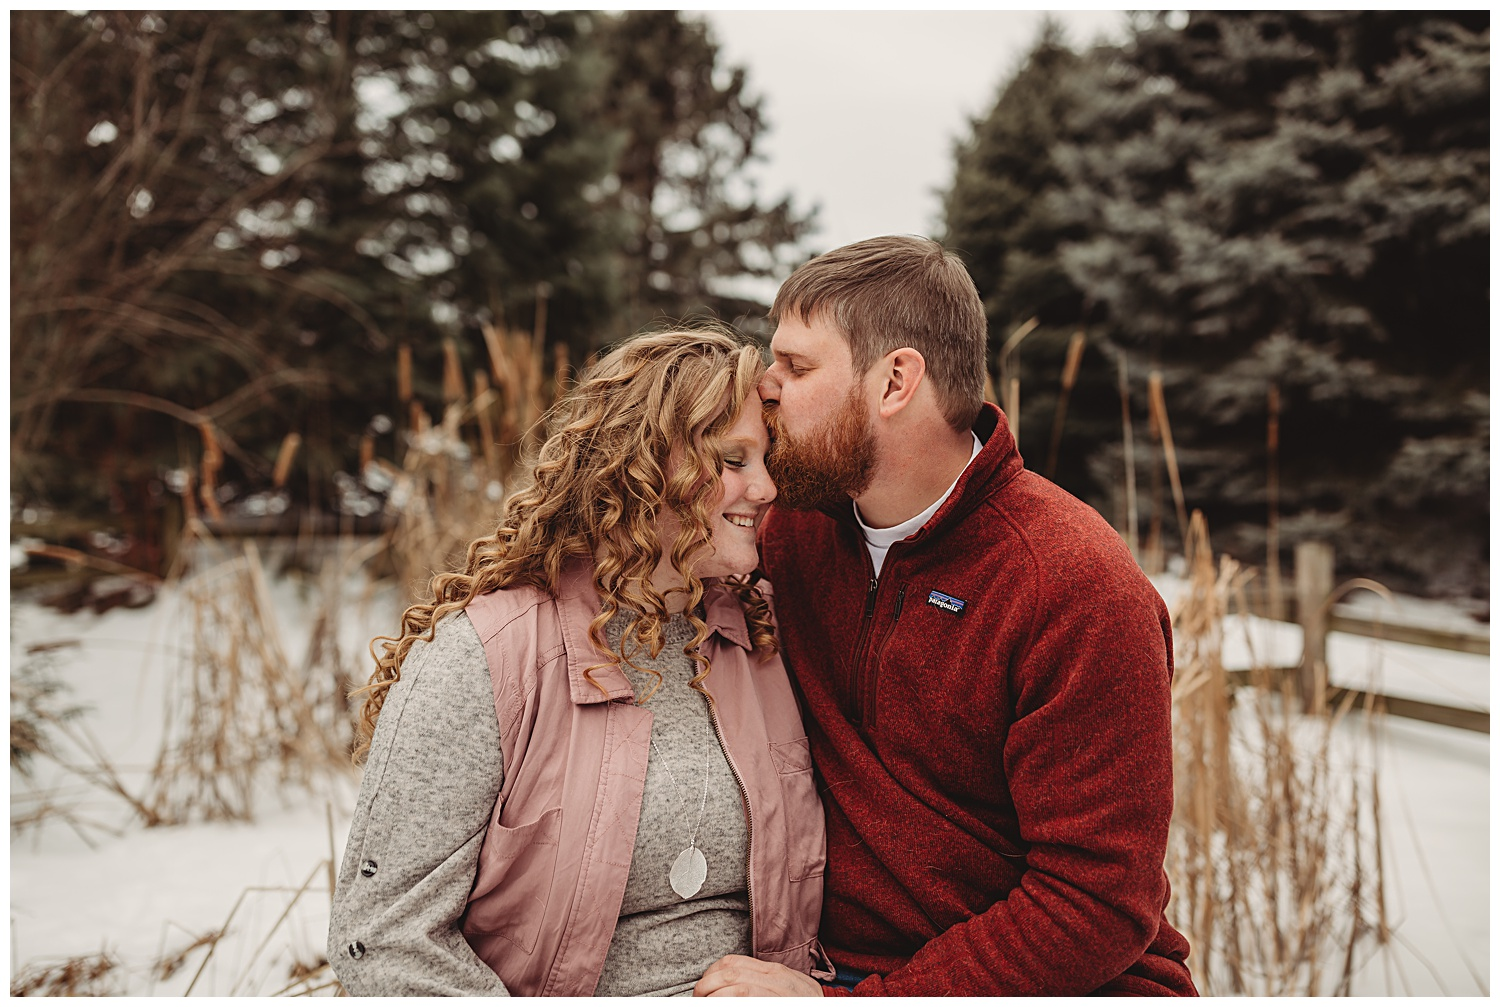 Peacock Road Family Farm Laingsburg MIchigan Winter Engagement Session_1335.jpg